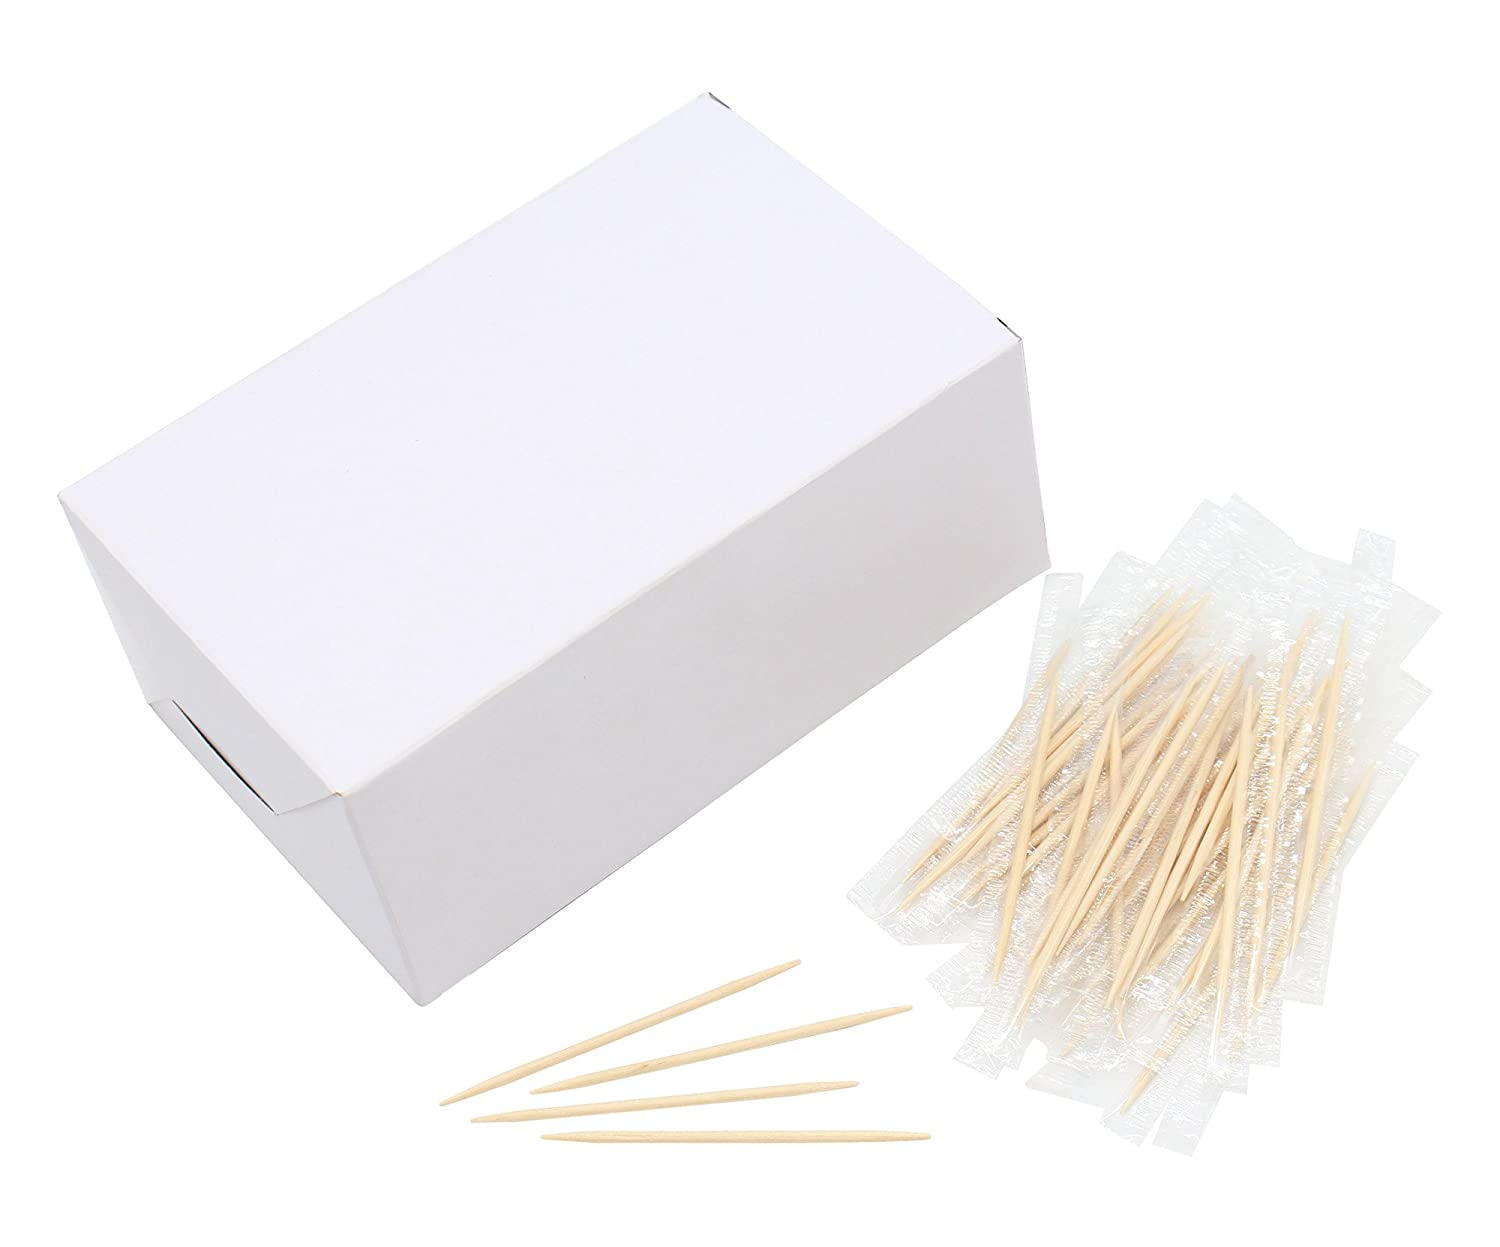 2.6 Inch Length Individually Wrapped Wooden Toothpicks Home Wood Toothpick Premium Quality 1000pcs